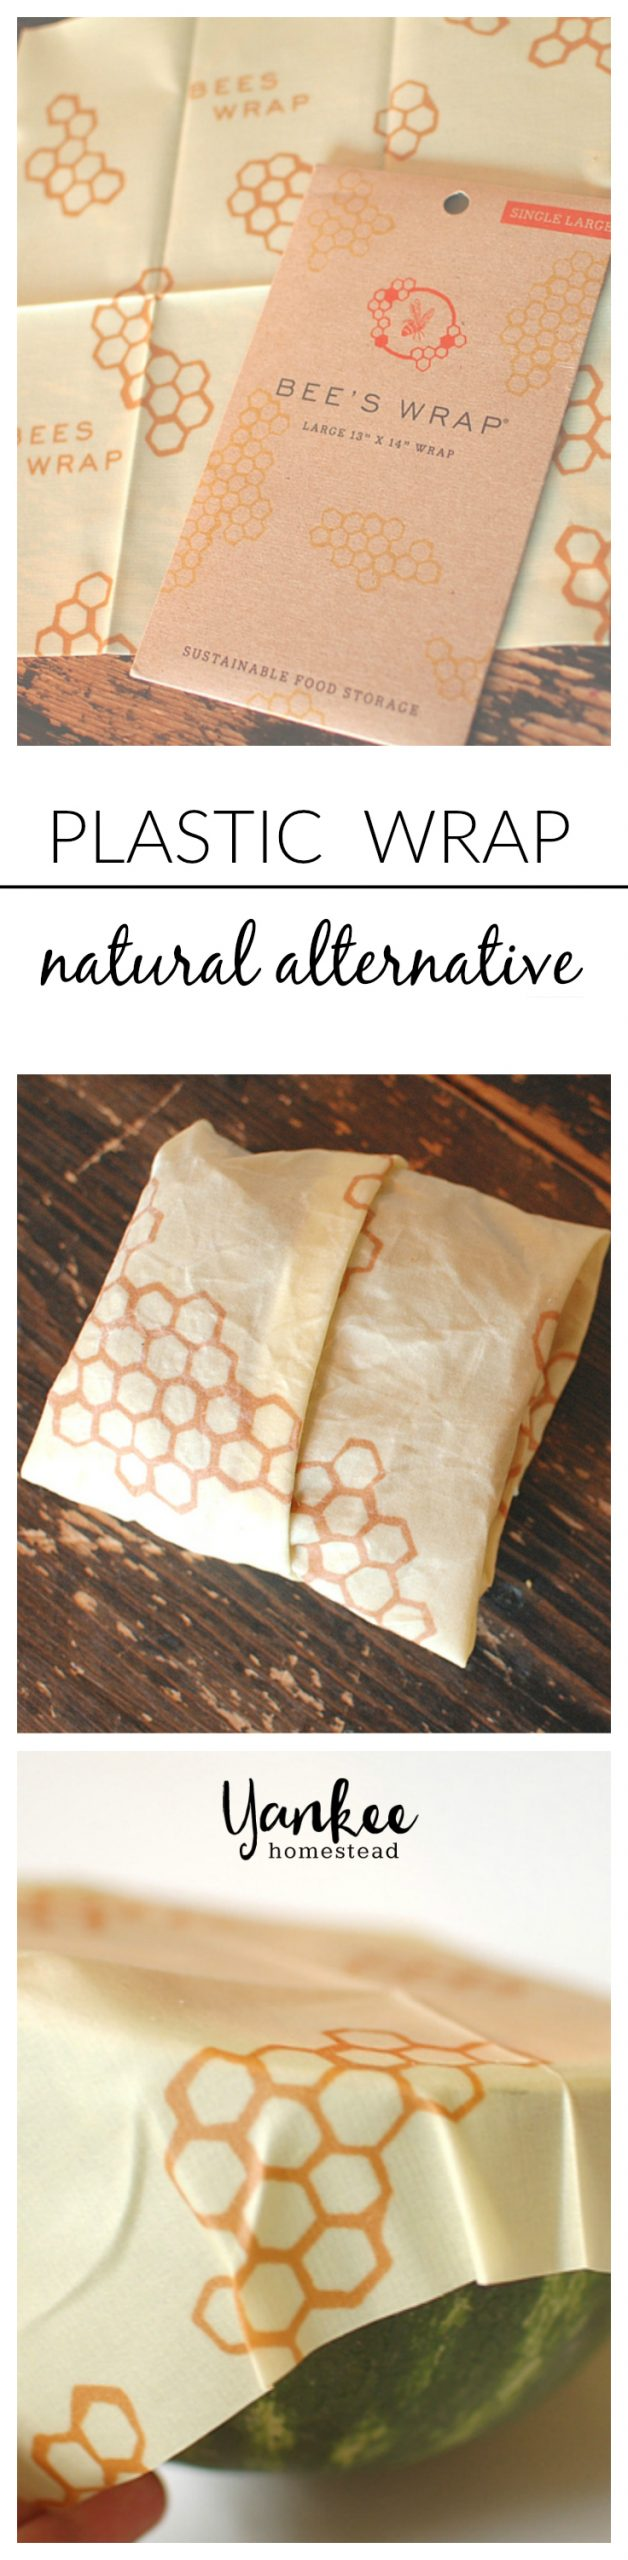 Get a set of Bee's Wrap, a natural and nontoxic alternative to plastic wrap, for just $3 (including shipping)!